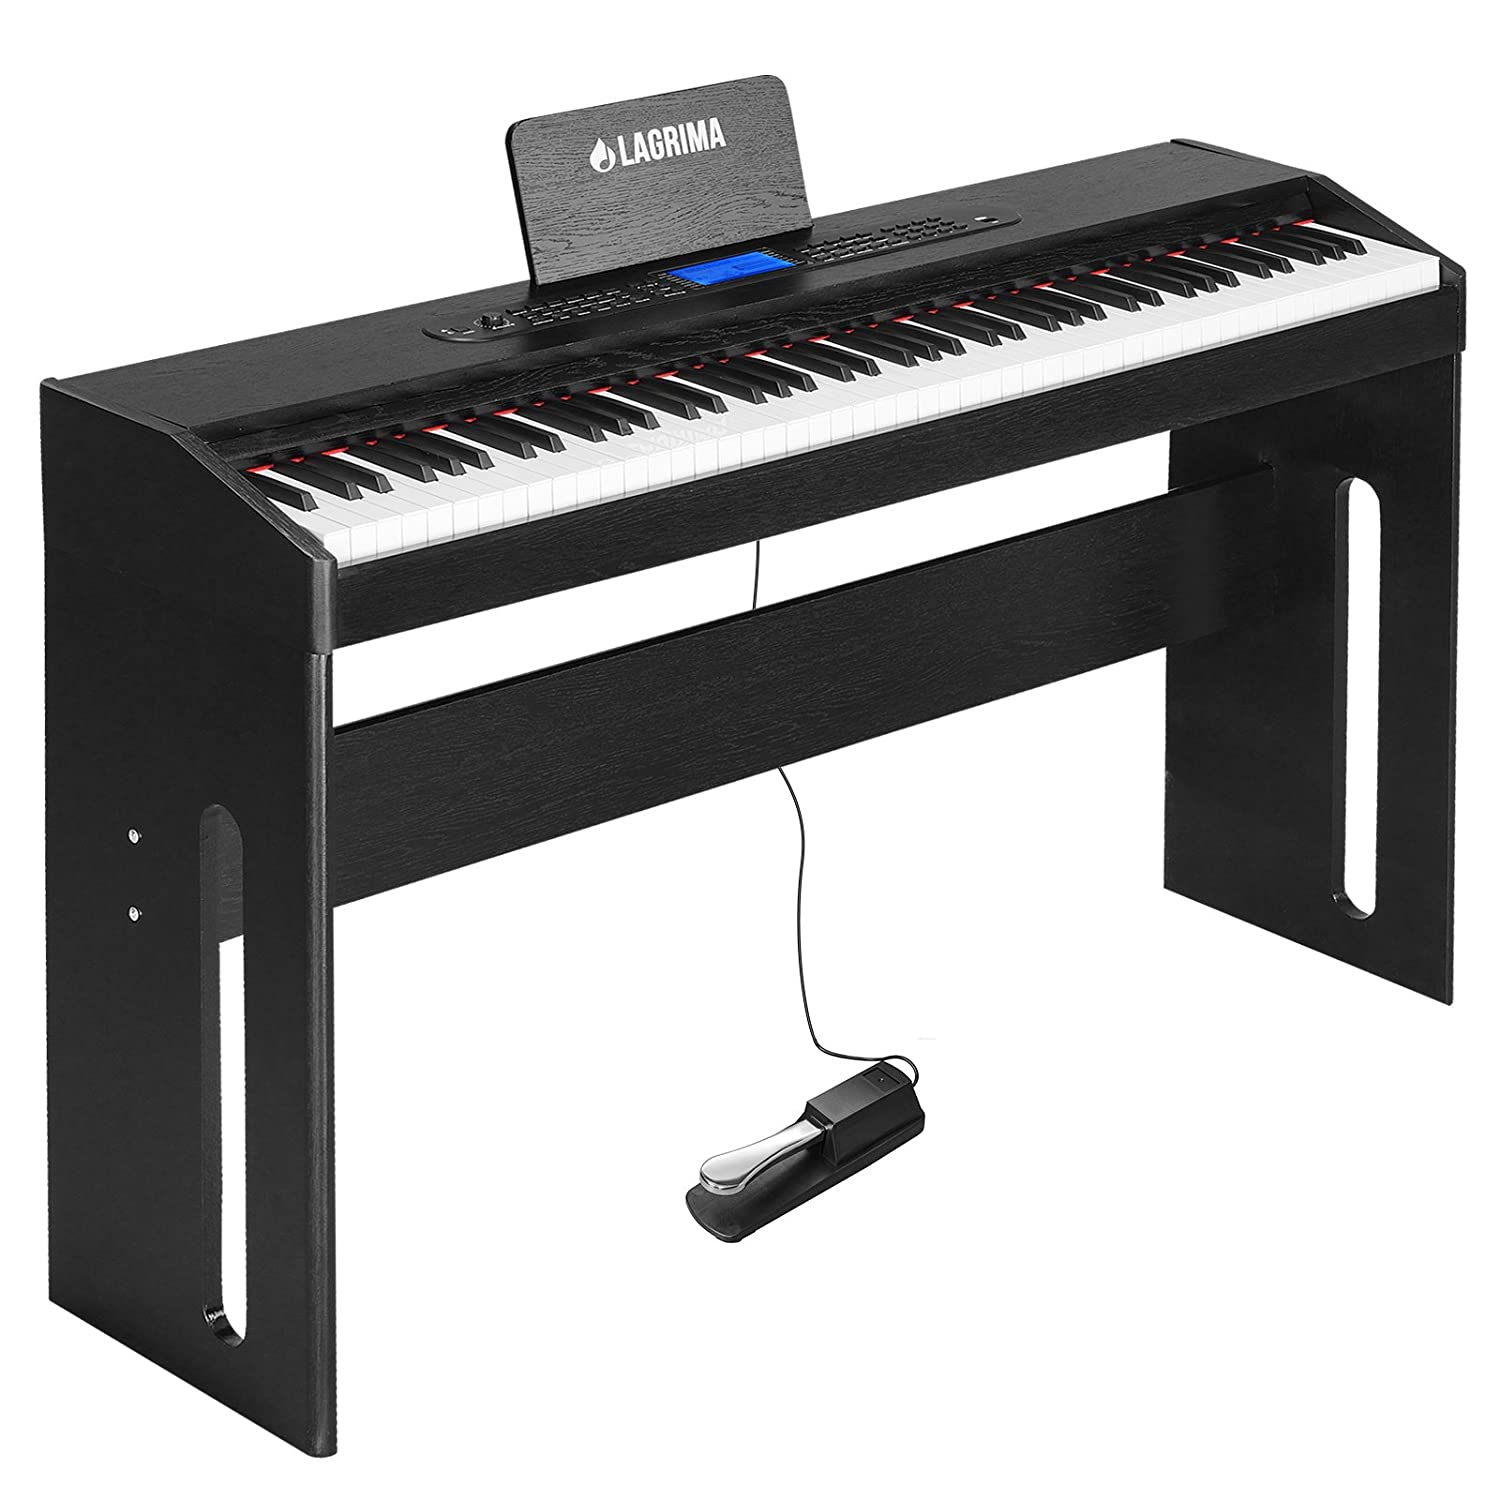 Lagrima Digital Piano 88 Key Electric Keyboard Yamaha Wiring Diagram For Beginner Adults W Music Stand Dust Cover Power Adapter 1 Pedal Board Instruction